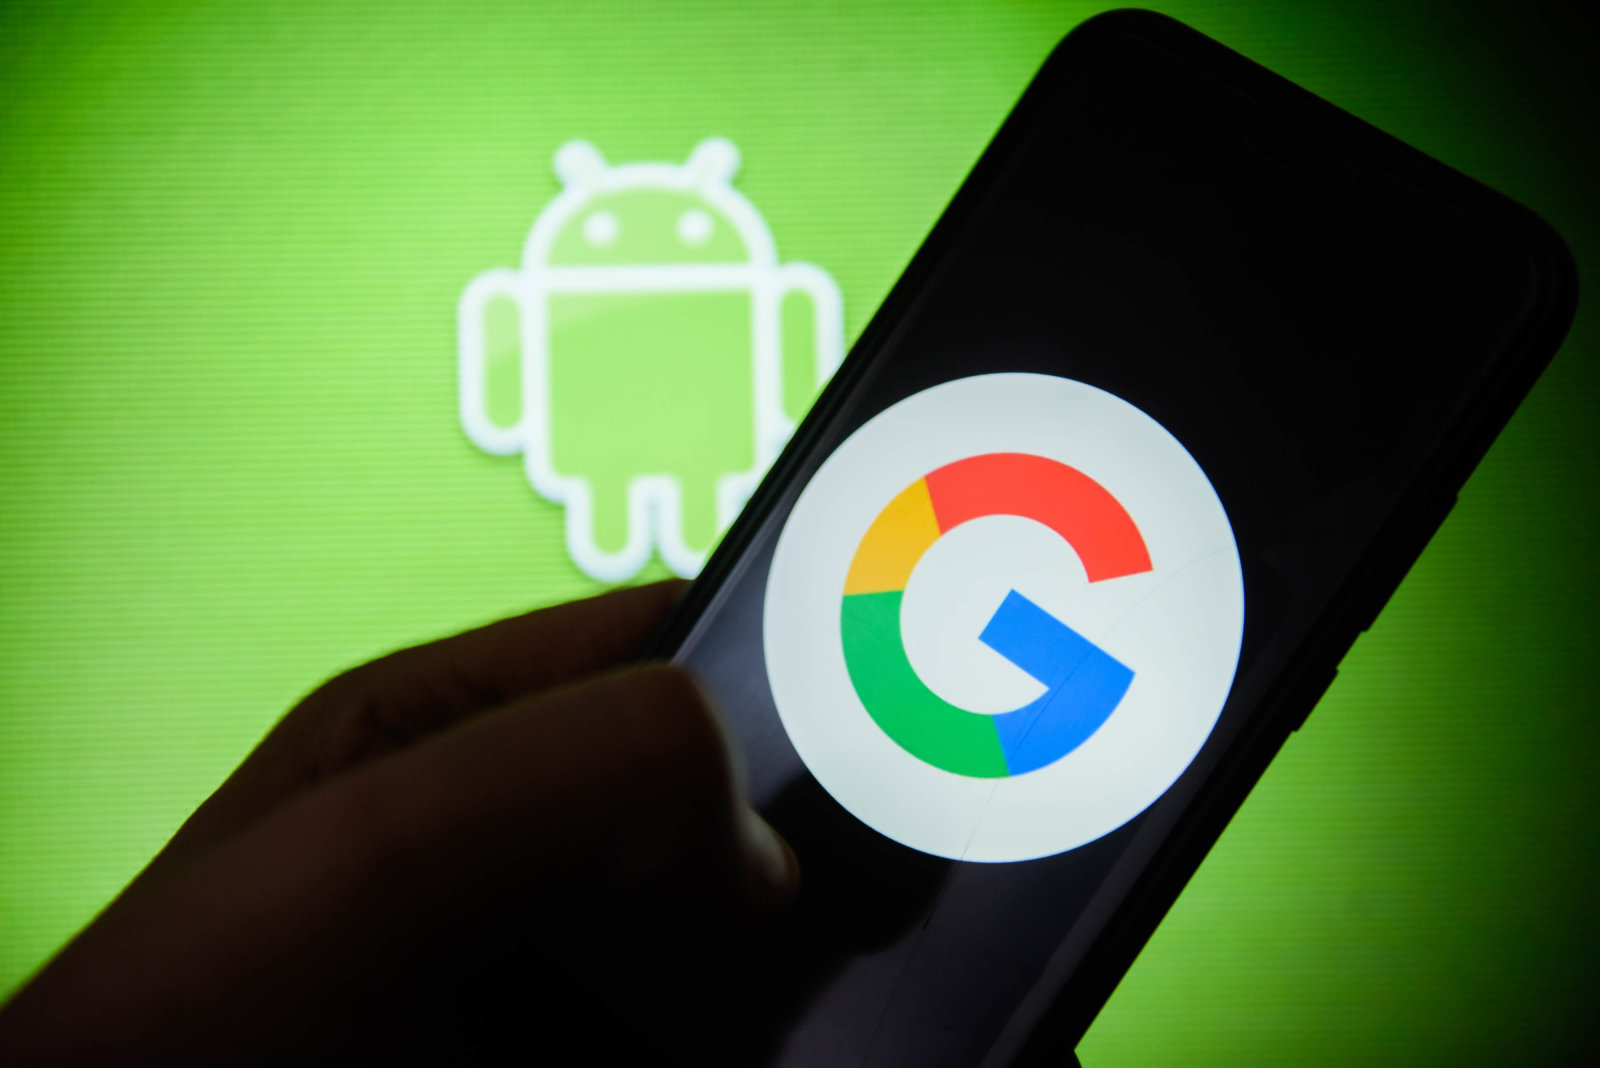 KRAKOW, POLAND - 2019/01/14: Google logo is seen on an android mobile phone. (Photo by Omar Marques/SOPA Images/LightRocket via Getty Images)